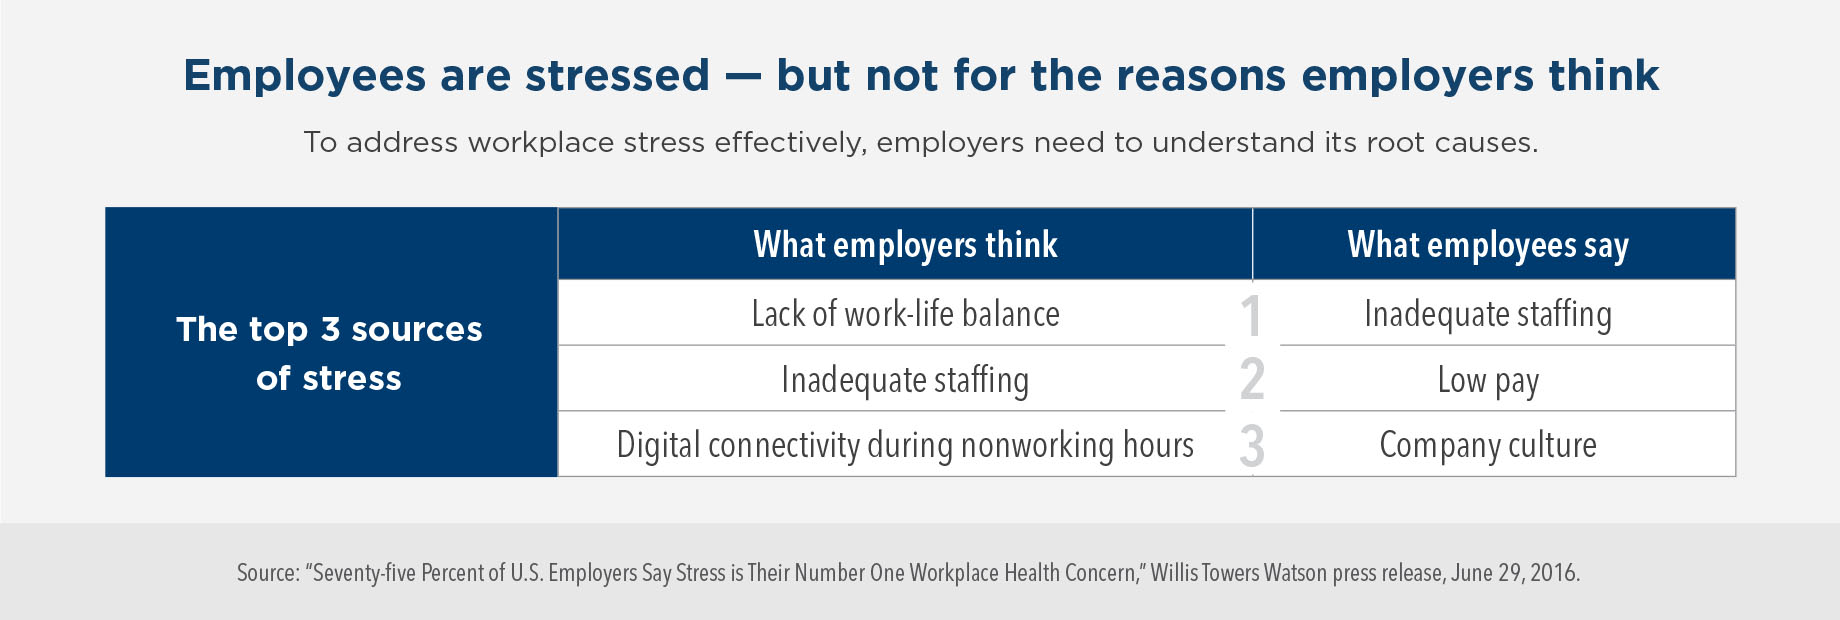 Employees are stressed – but not for the reasons employers think. To address workplace stress effectively, employers need to understand its root causes. Employers think that the top three sources of stress are lack of work-life balance, inadequate staffing, and digital connectivity during nonworking hours. Employees say that the top three sources of stress are inadequate staffing, low pay, and company culture.